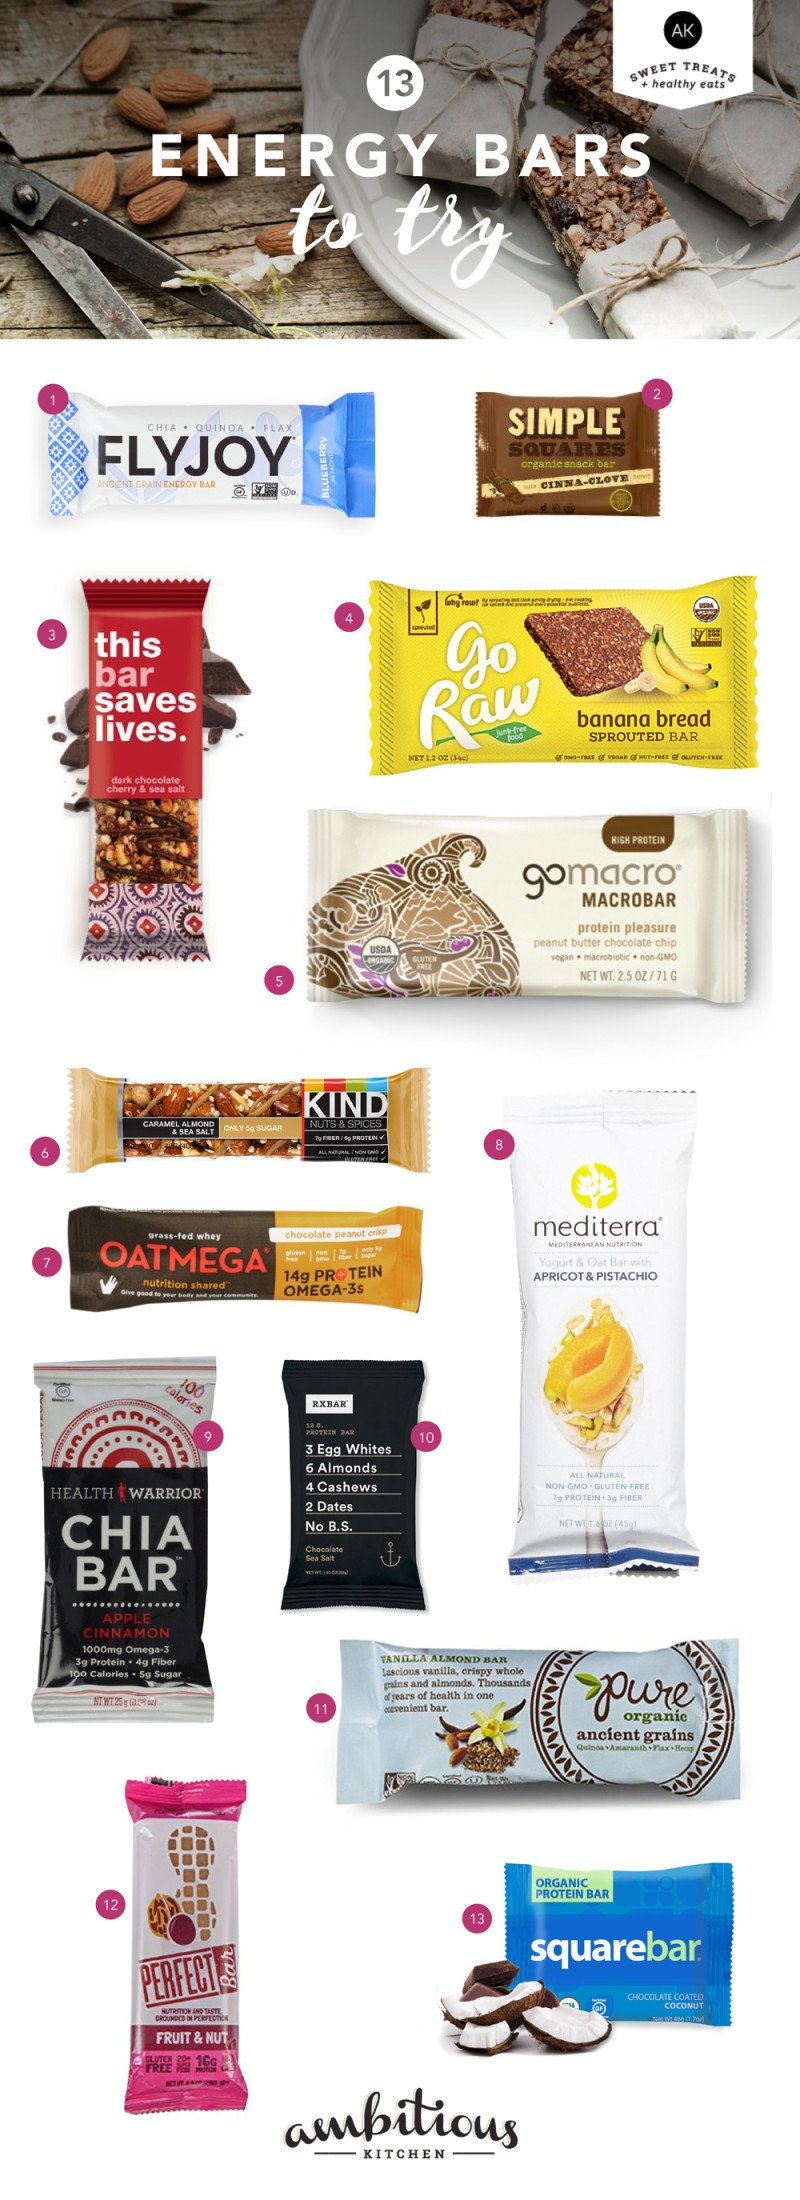 13 Nutrition & Energy Bars to Try -- JUNK FREE, HEALTHY options for clean eating!